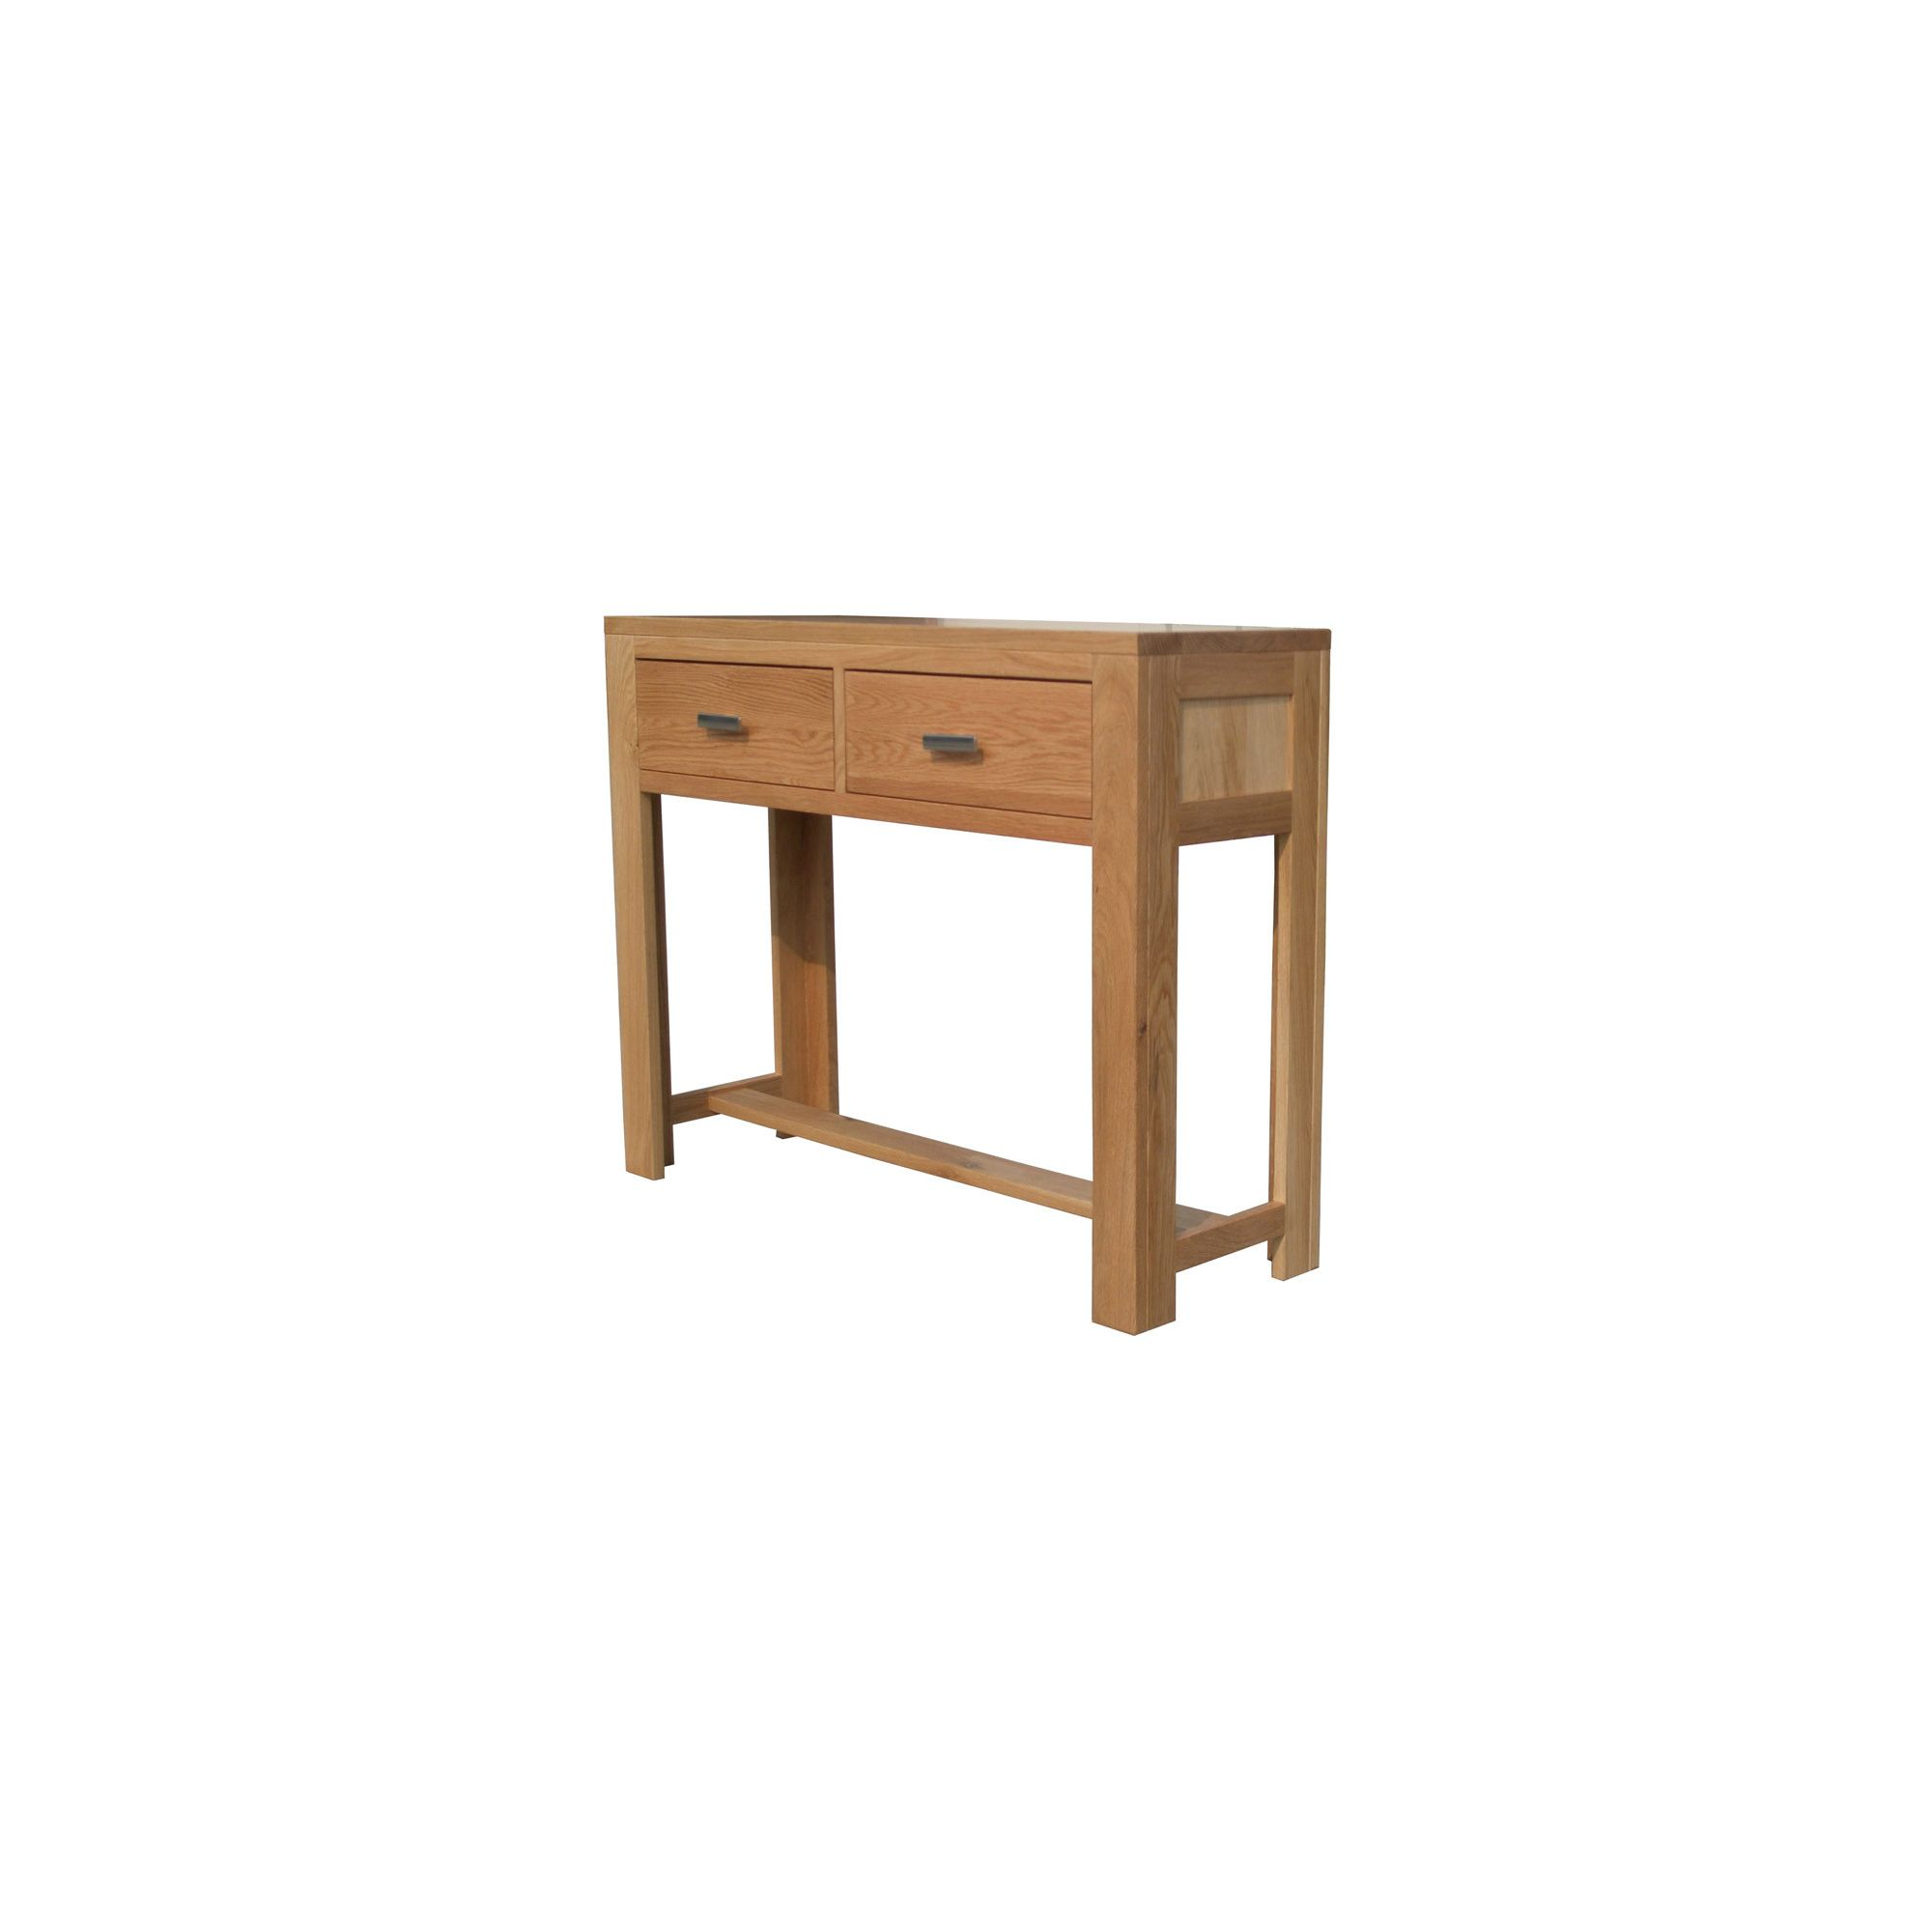 Home Zone Furniture Churchill Oak 2010 Large Console Table in Natural Oak